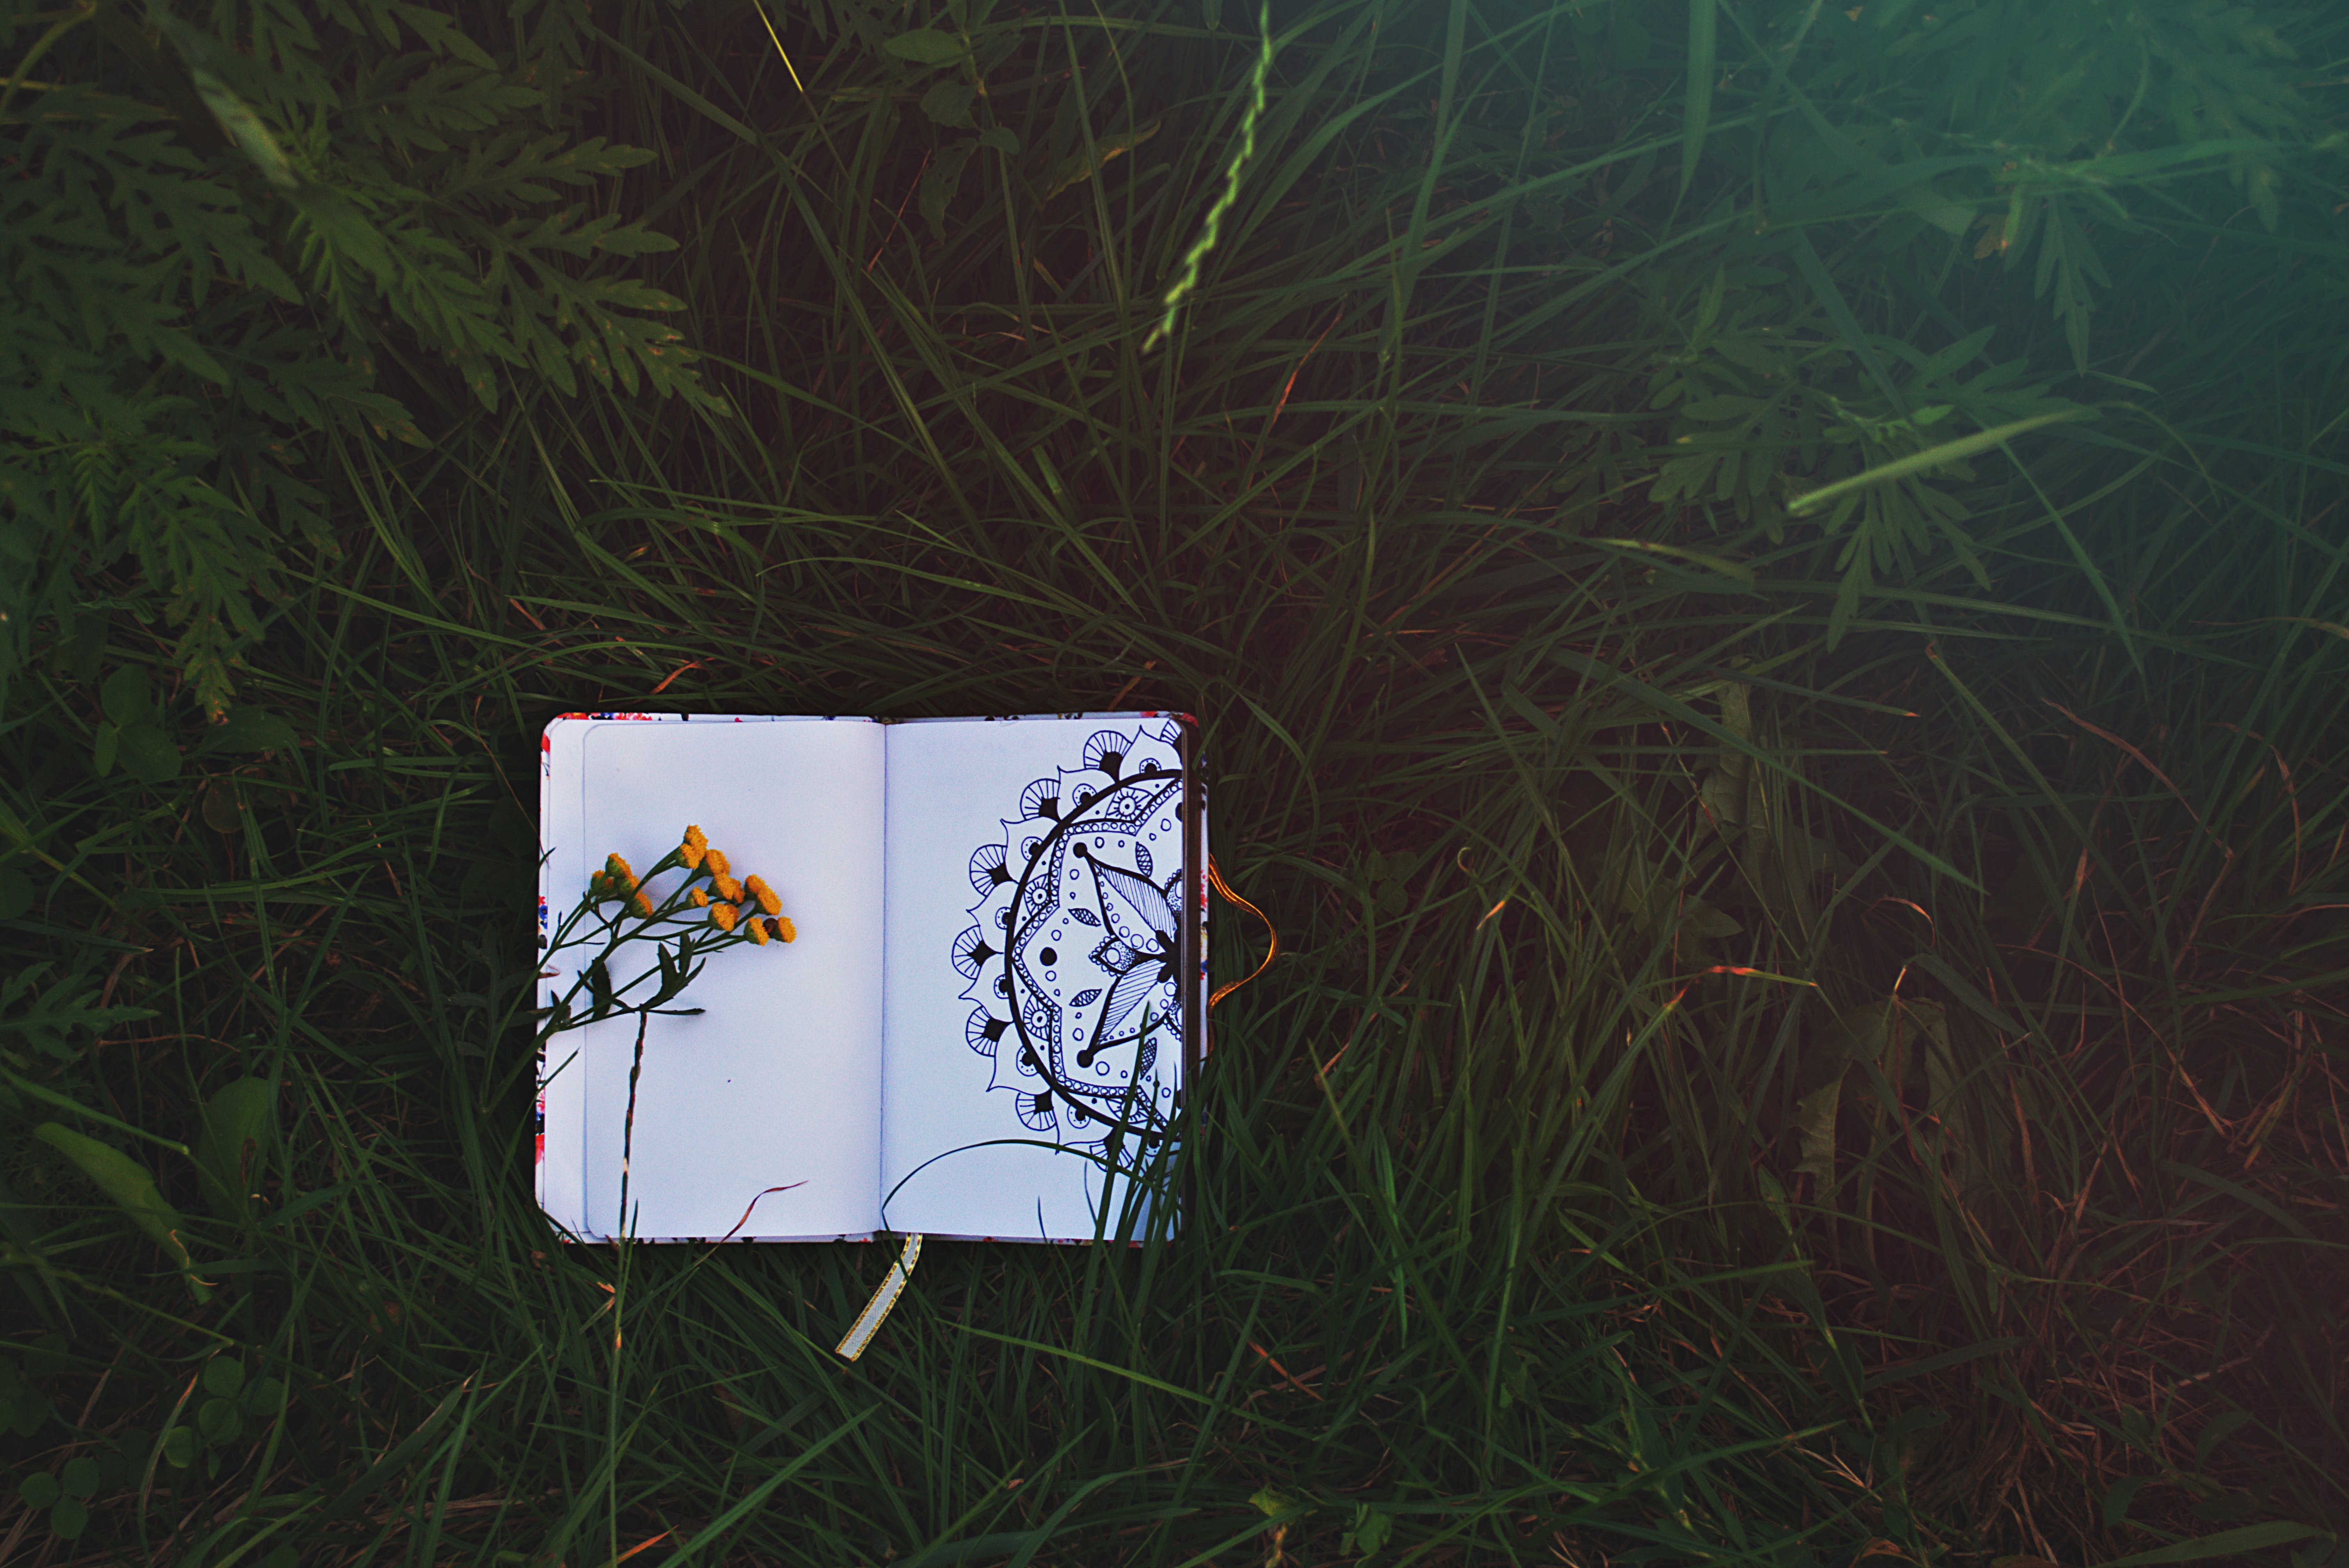 Opened White Book on Green Grass